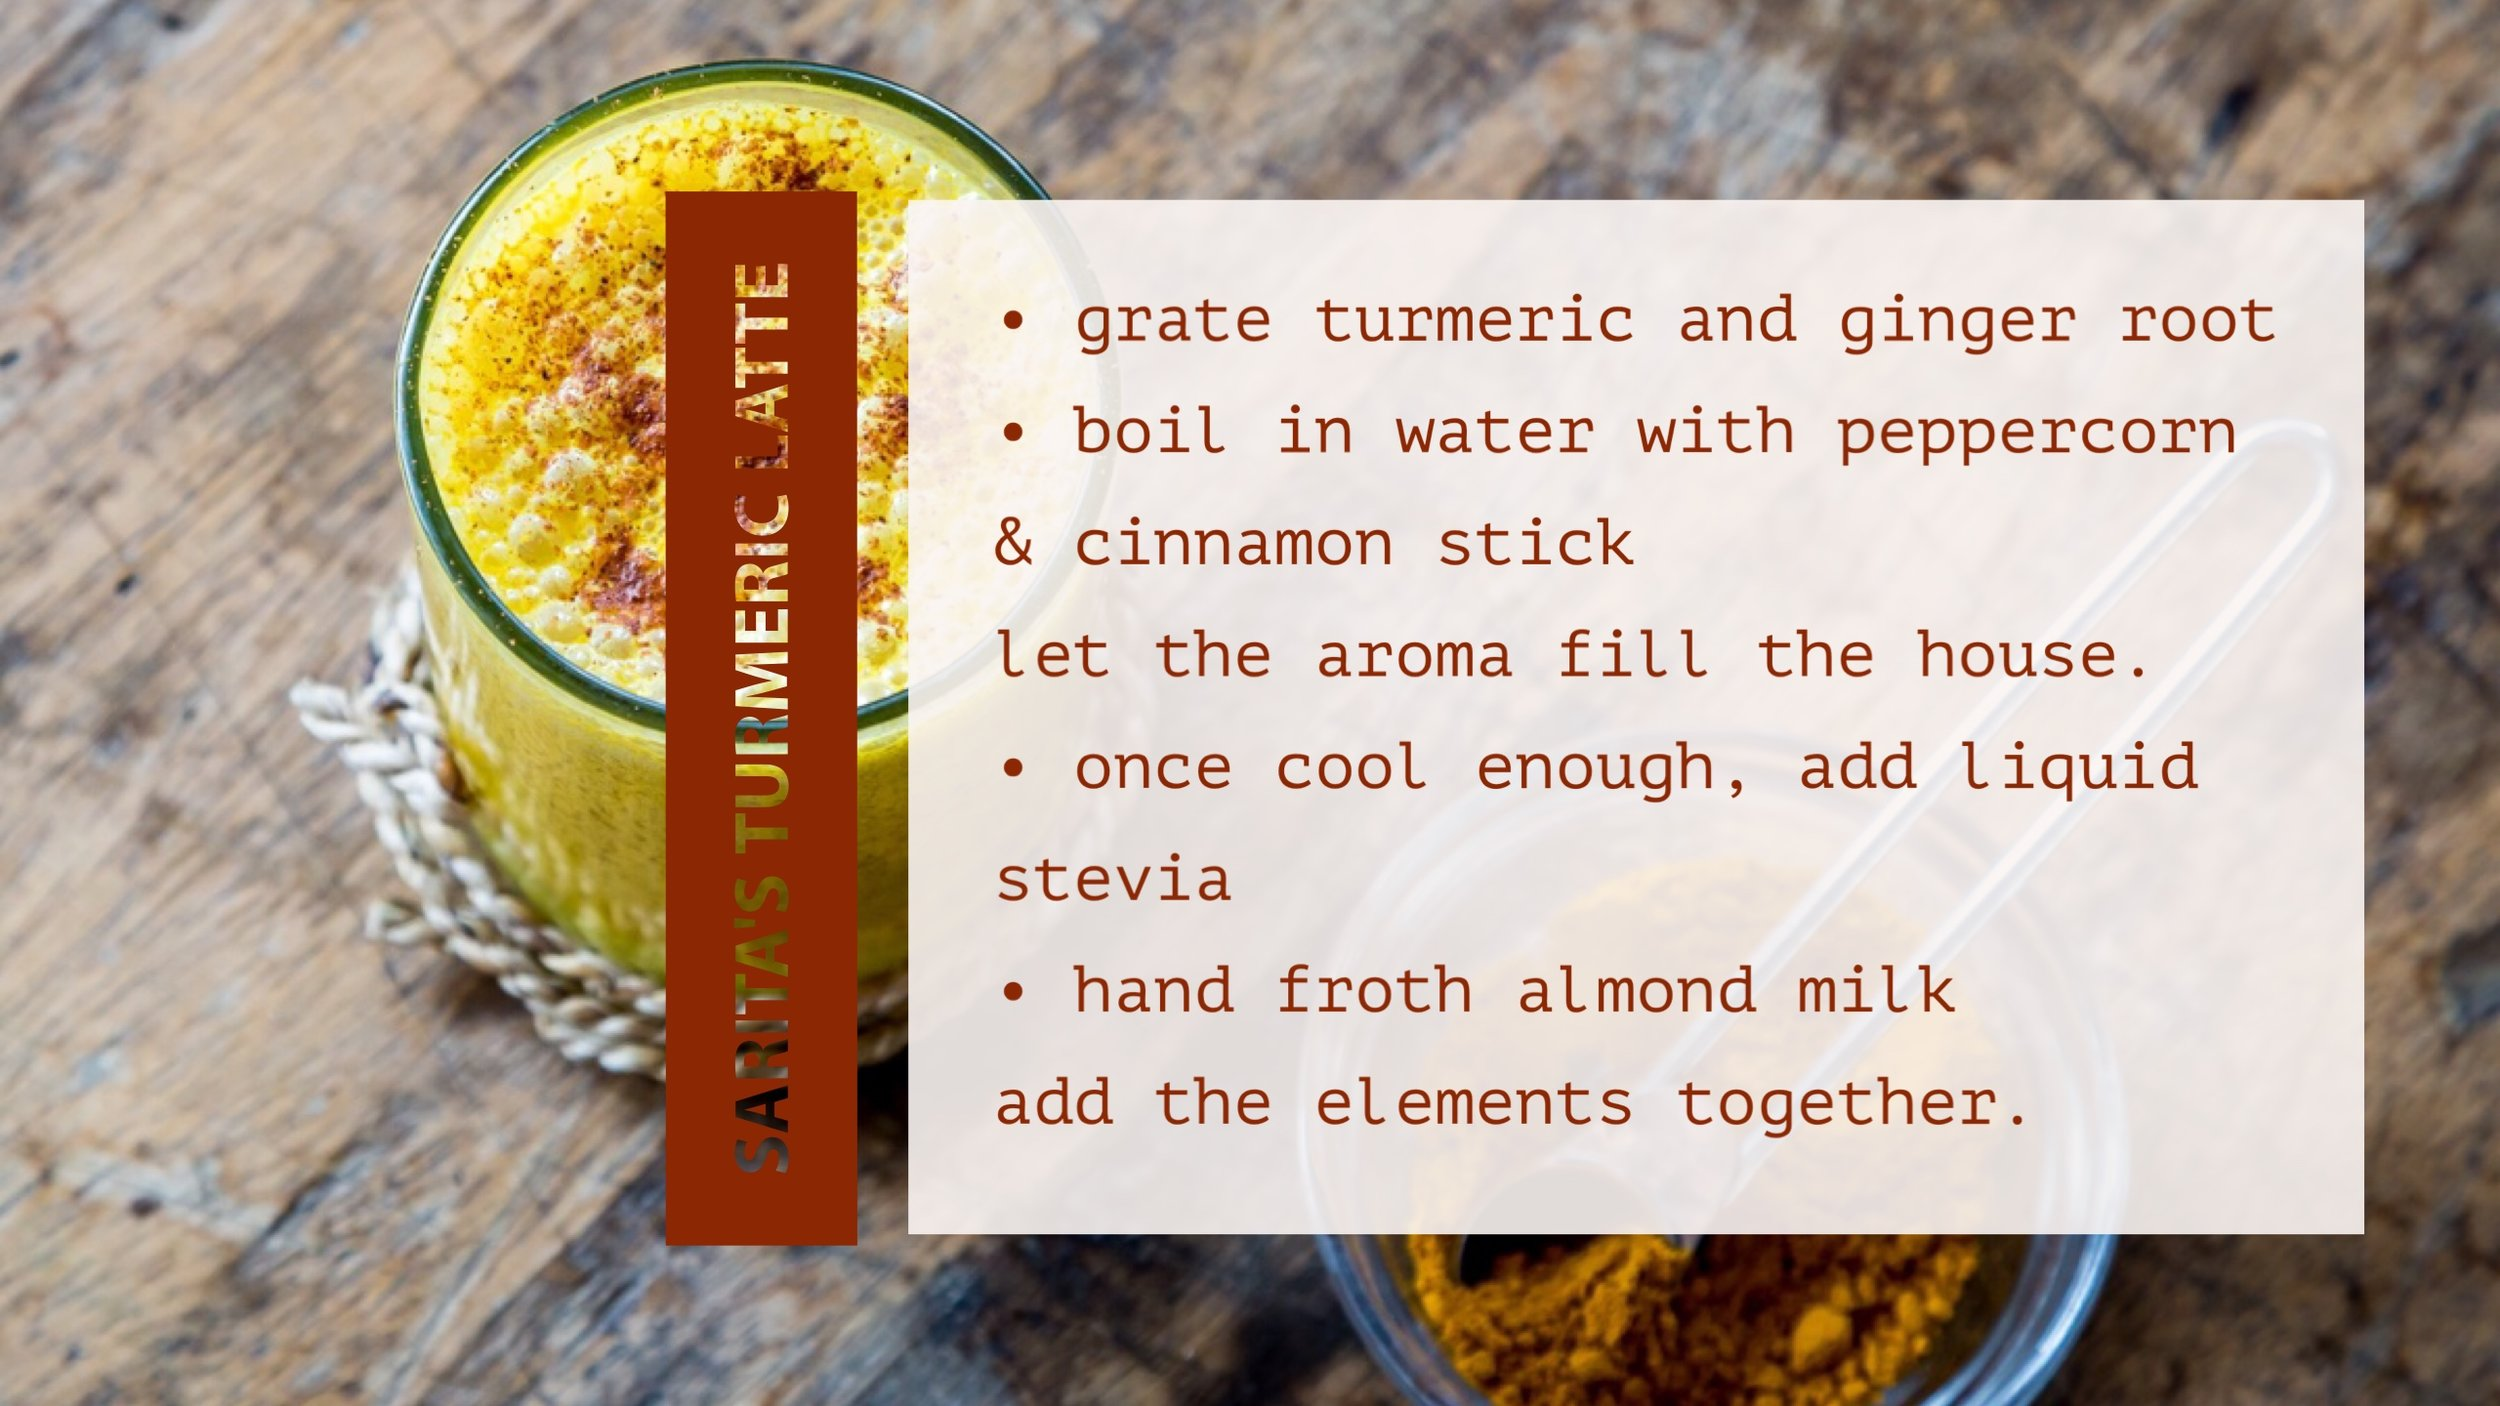 Recipe card created for St. Pete-native fermenter and owner of St. Pete Ferments Sarita Arizola.